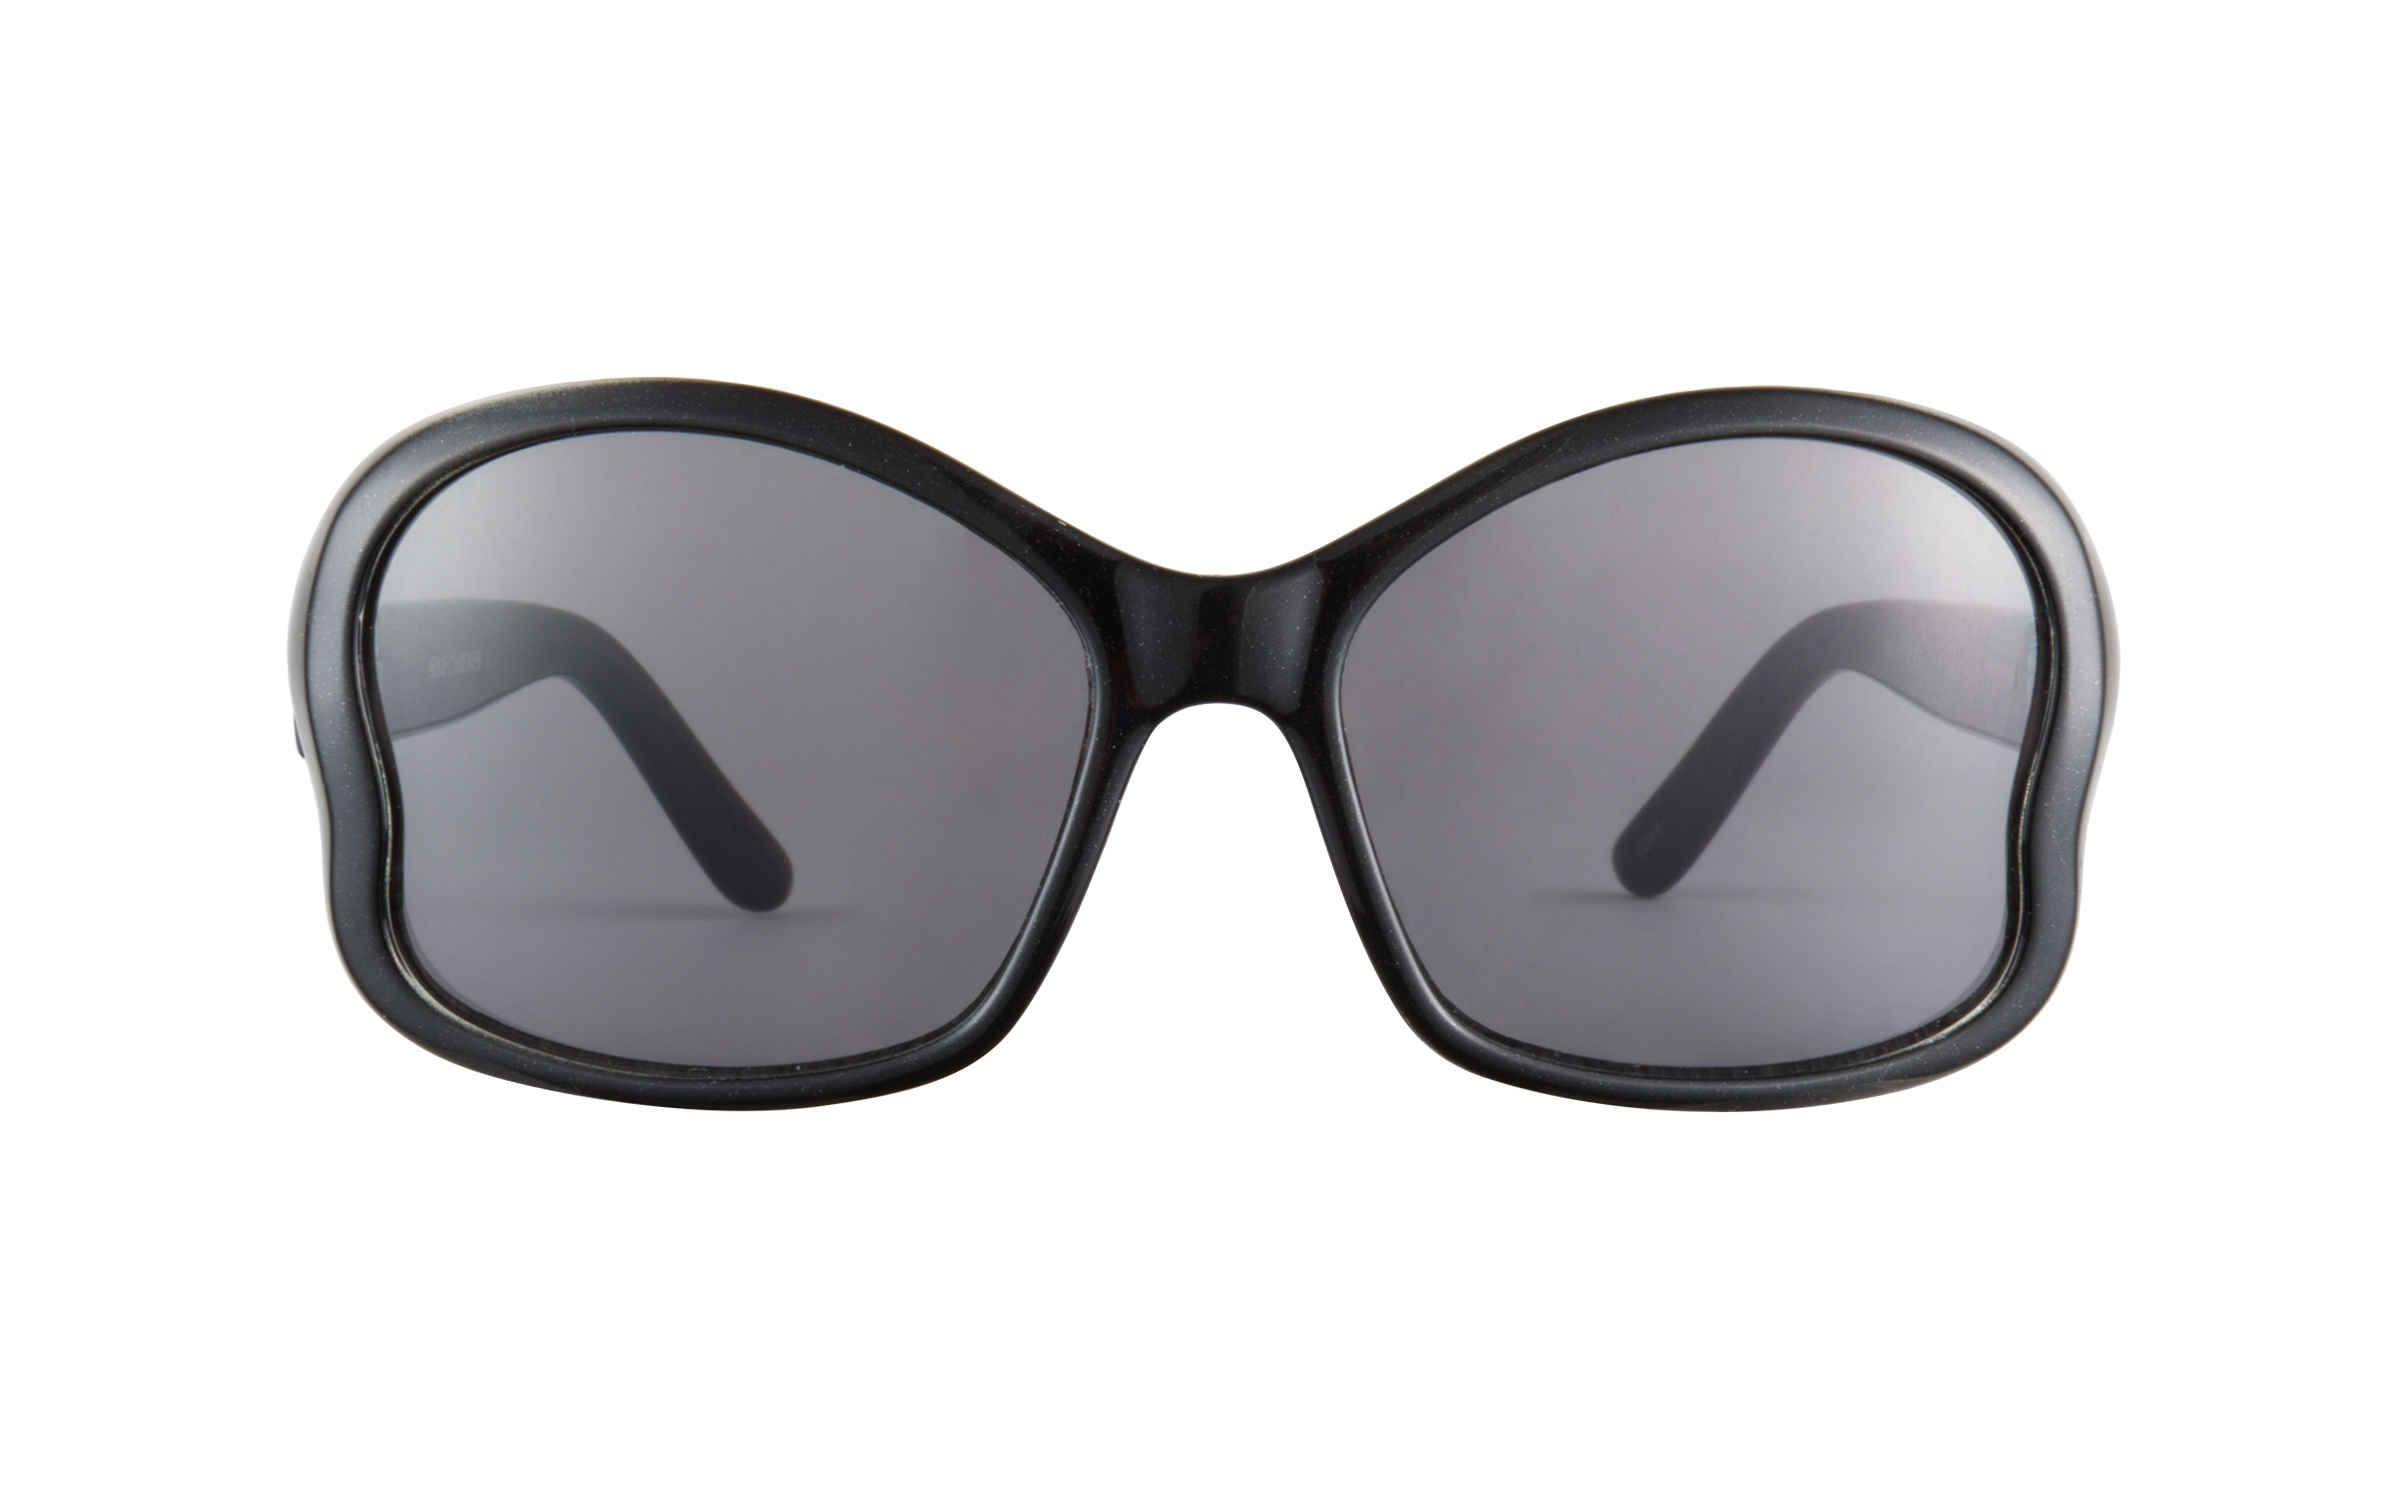 Skechers_Black_Acetate_Sunglasses__Clearly_Glasses_Online